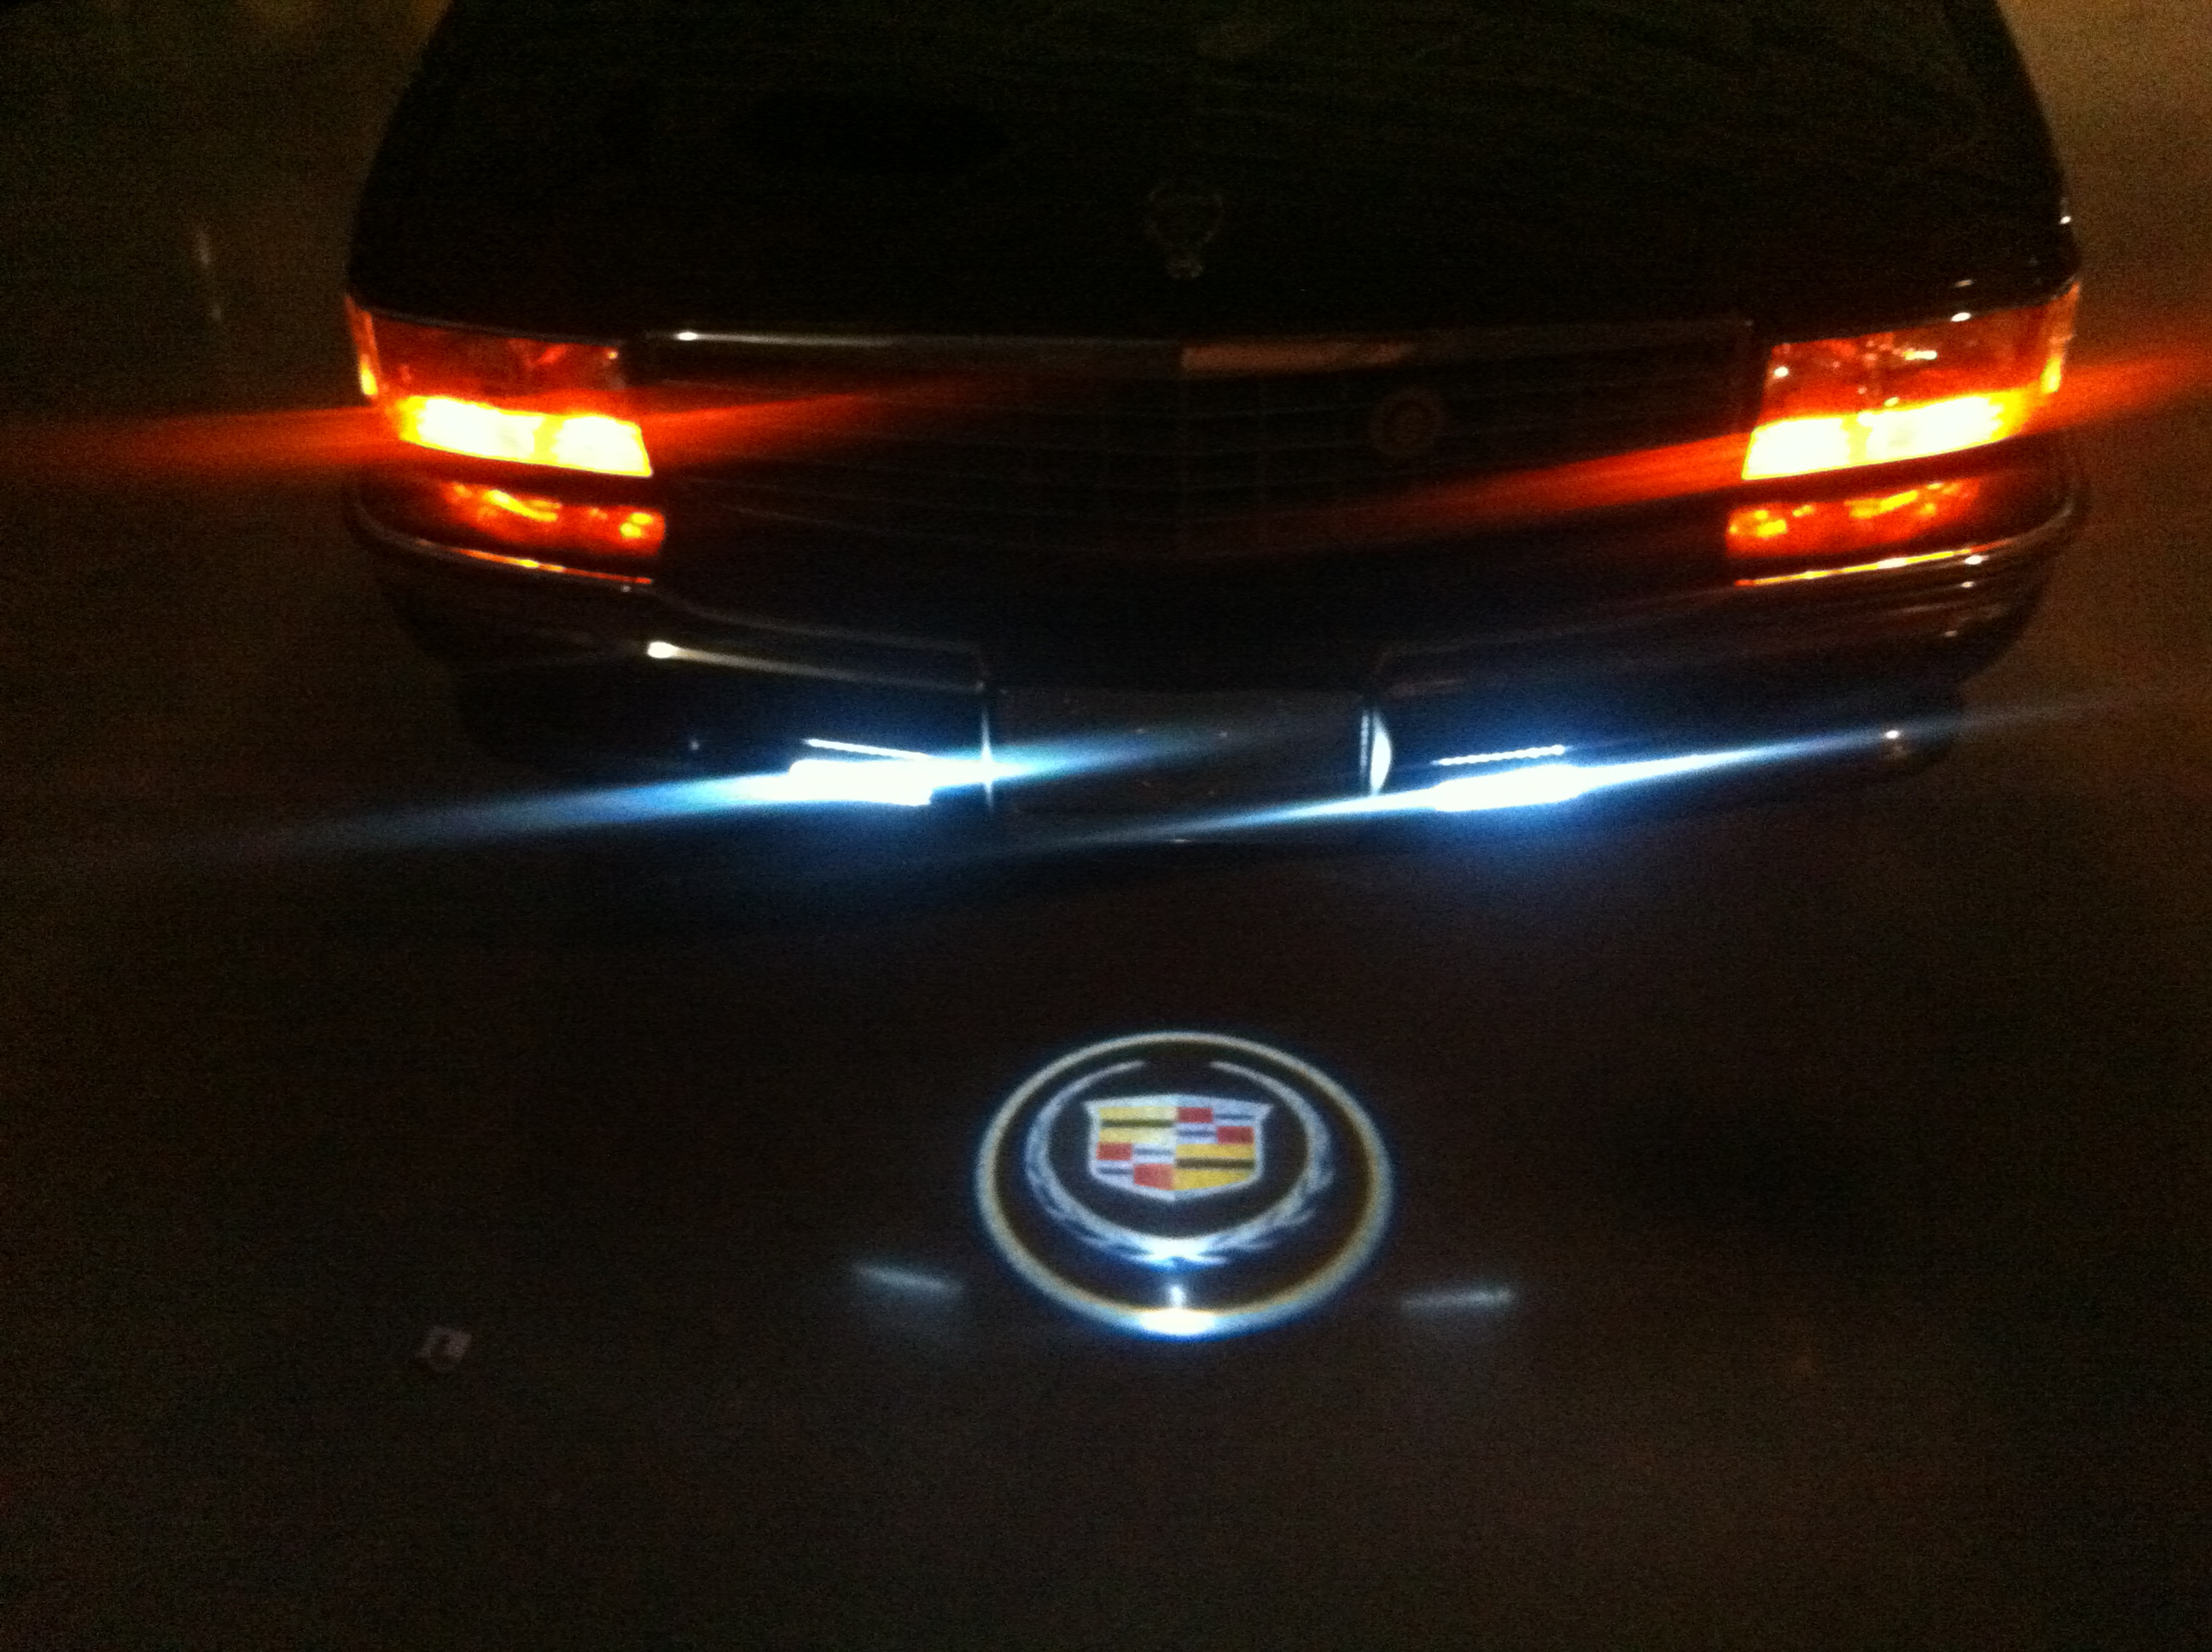 Cadillac ghost lights - 19026807